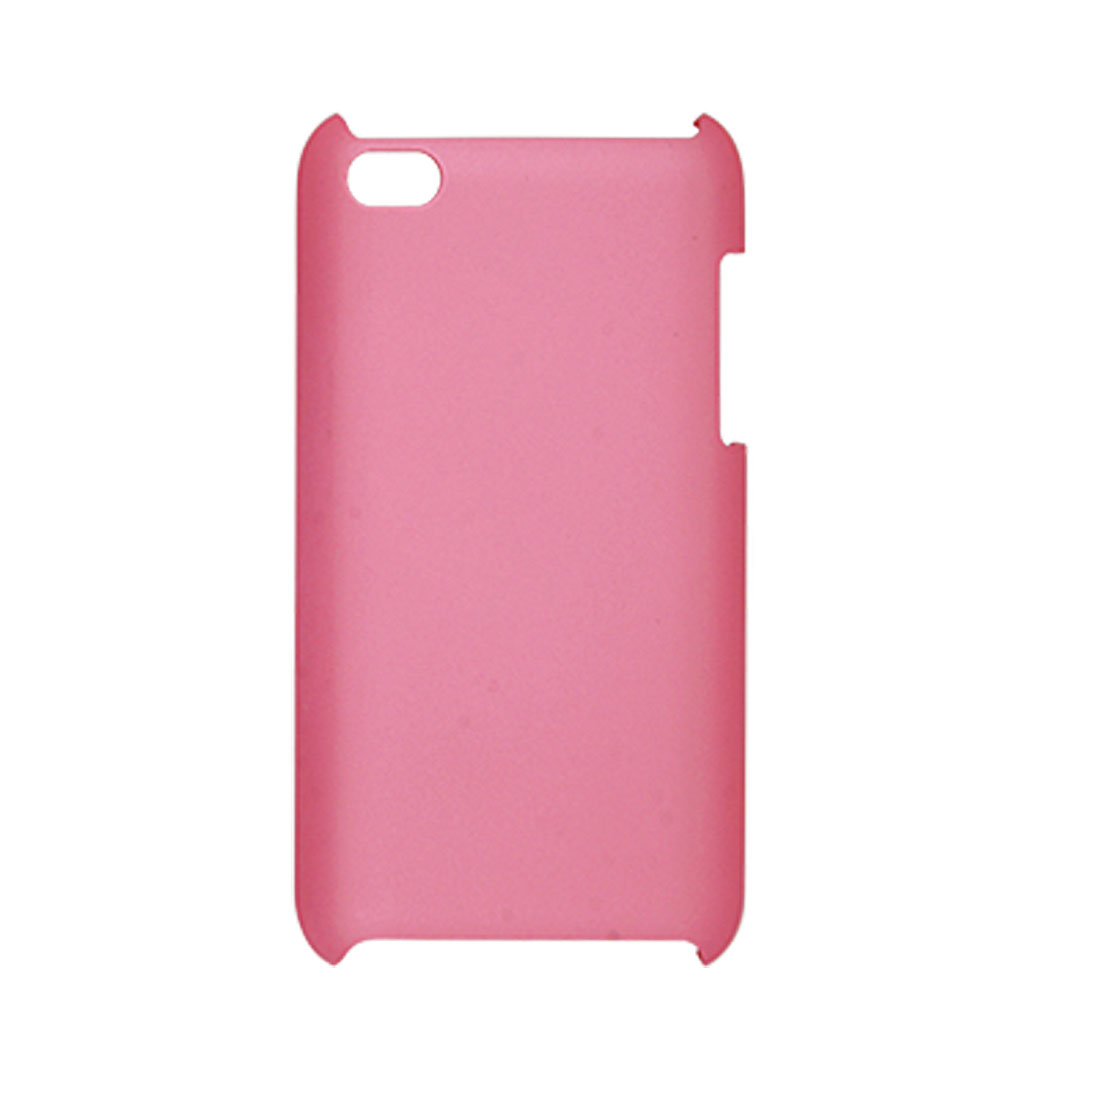 Dark Pink Rubberized Plastic Back Case for iPod Touch 4G